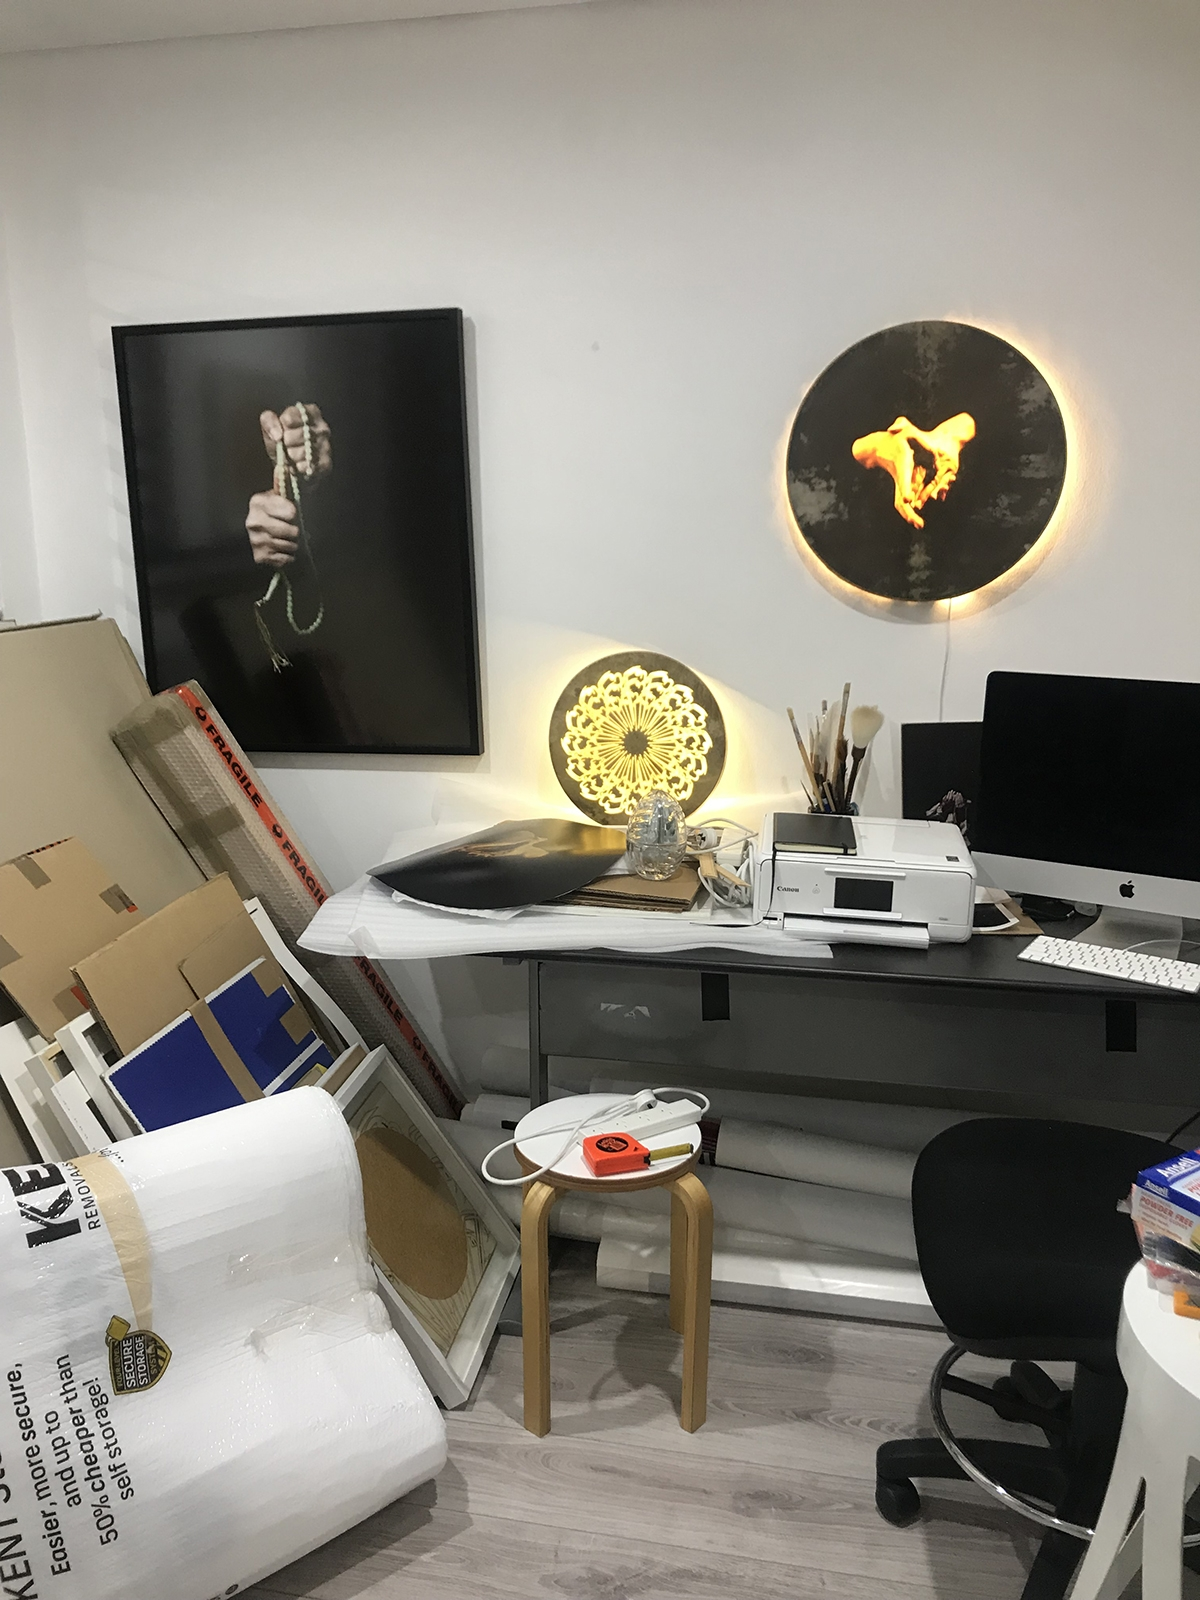 A framed photograph of hands, a stack of cardboard, an illumanited graphic artwork, a computer screen, and a stool are among the items seen in a white room.